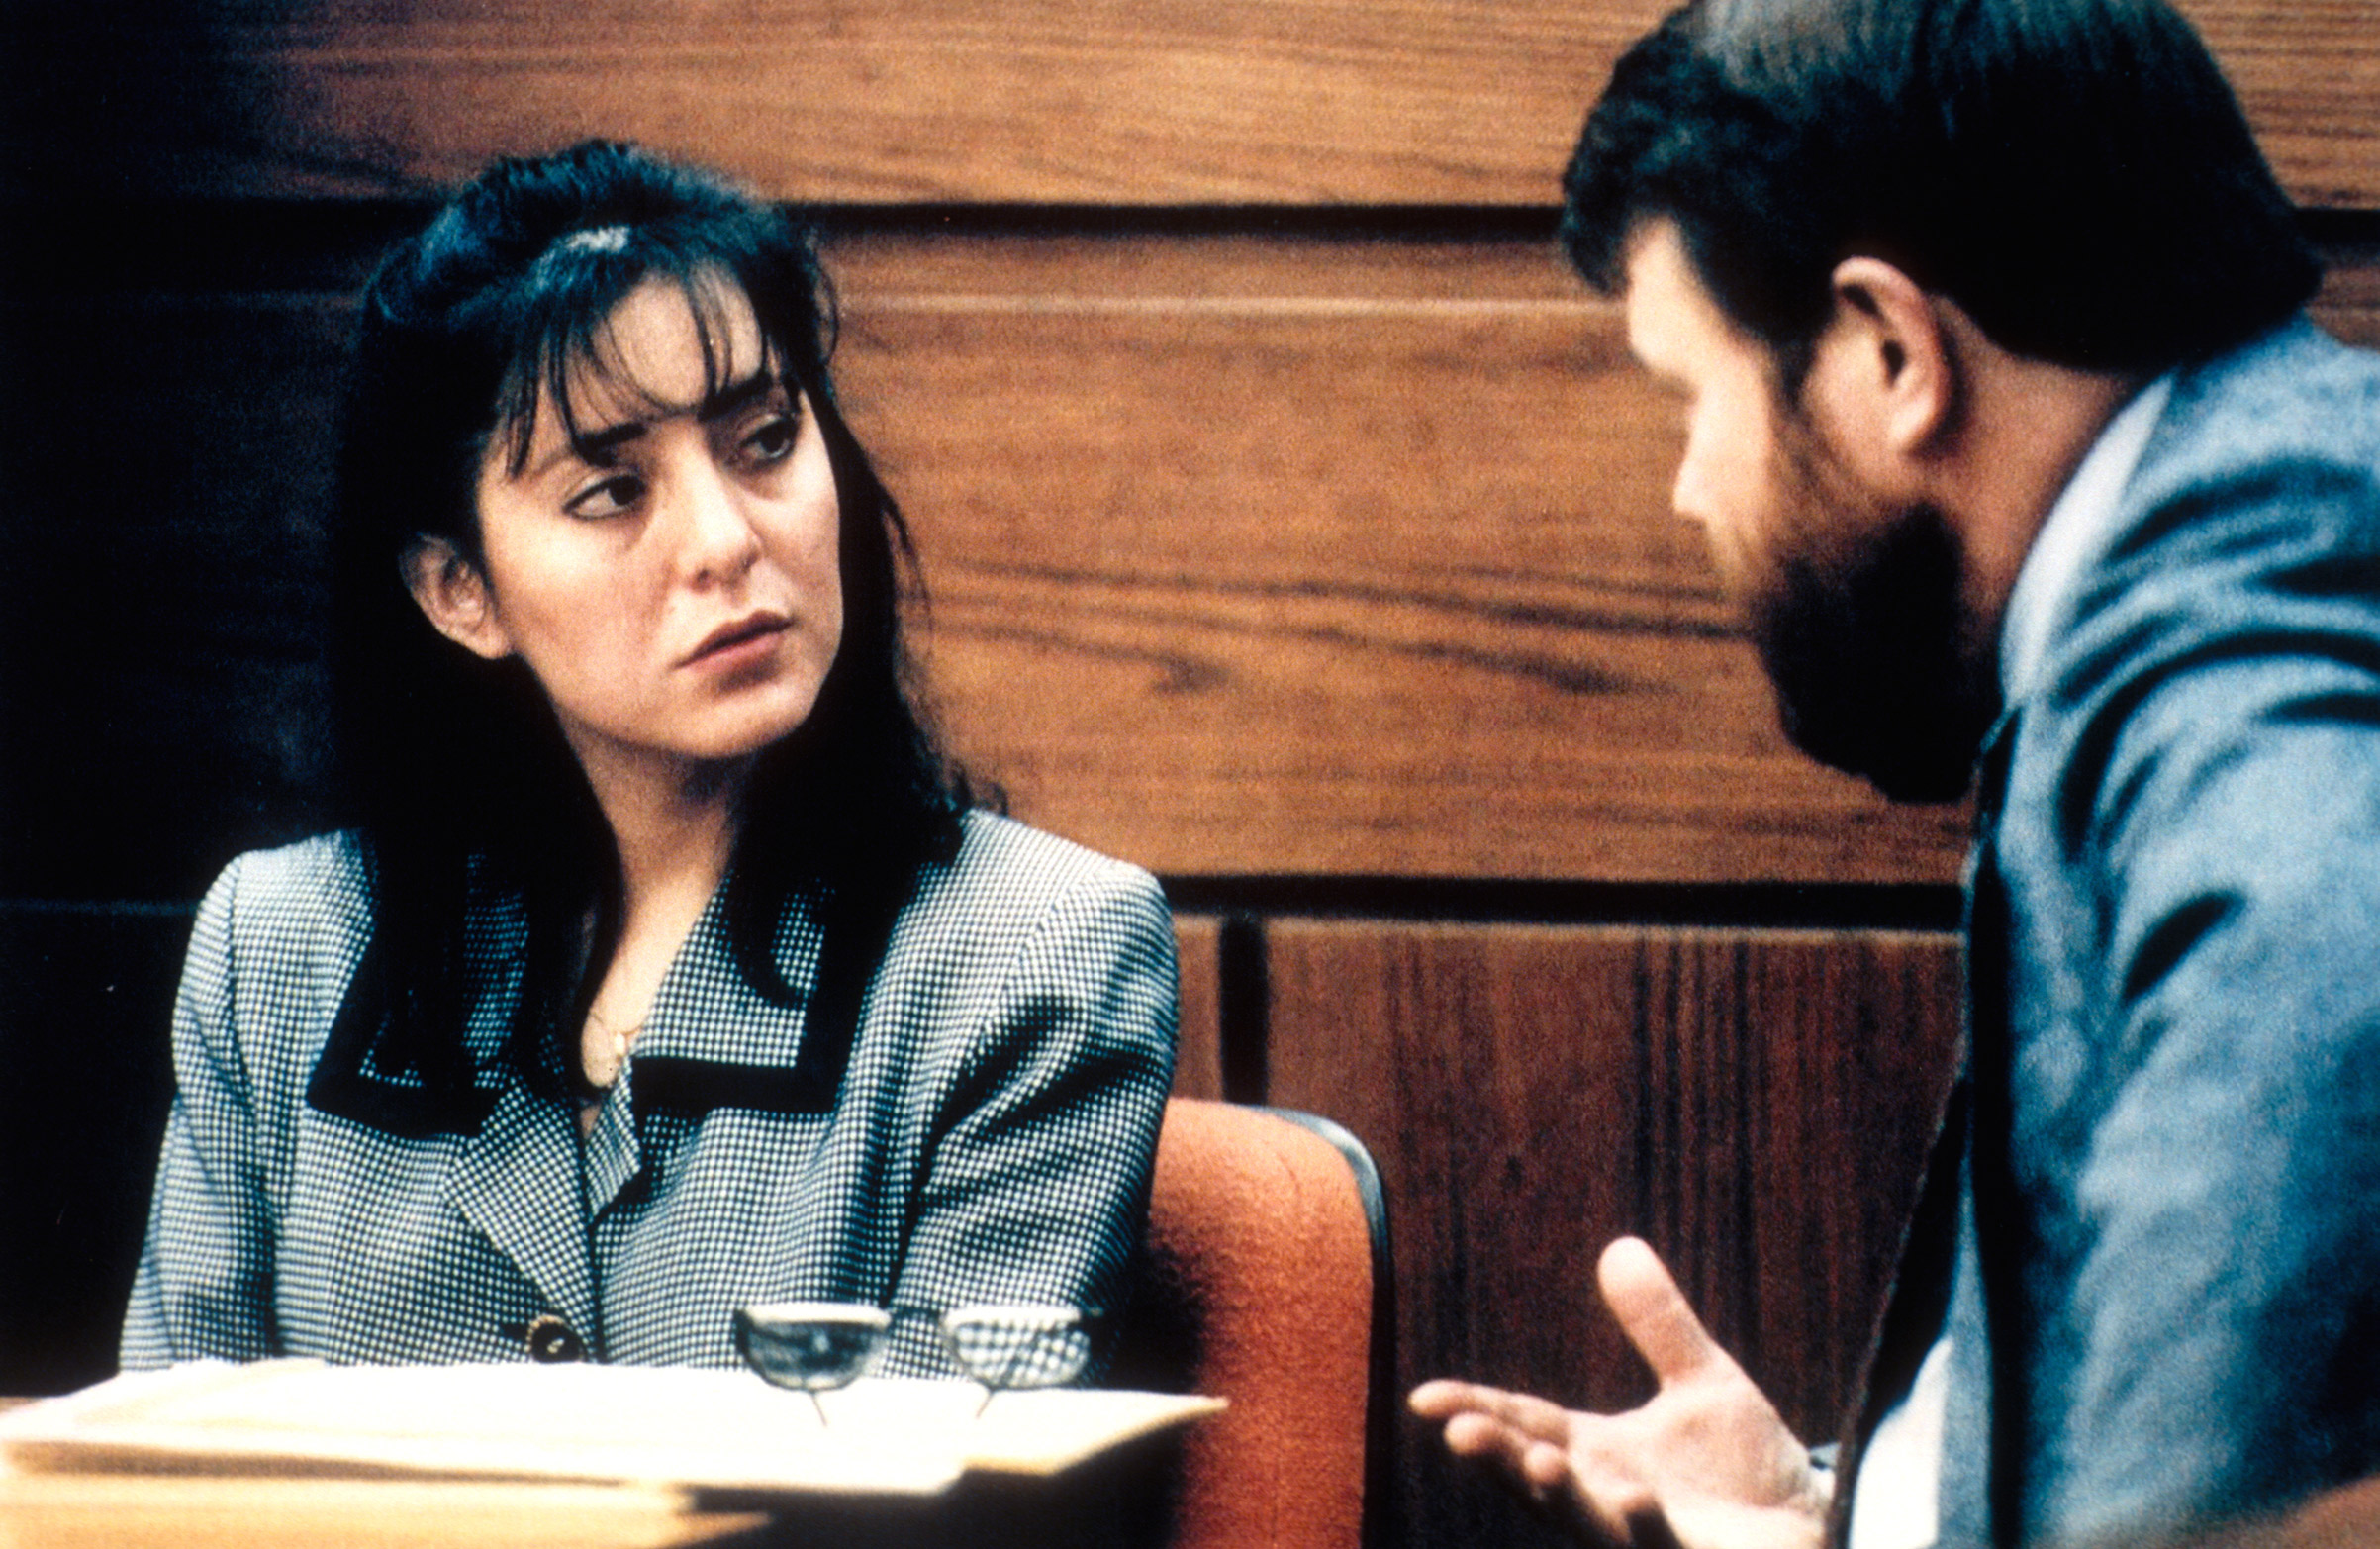 Lorena Bobbitt, in her own words